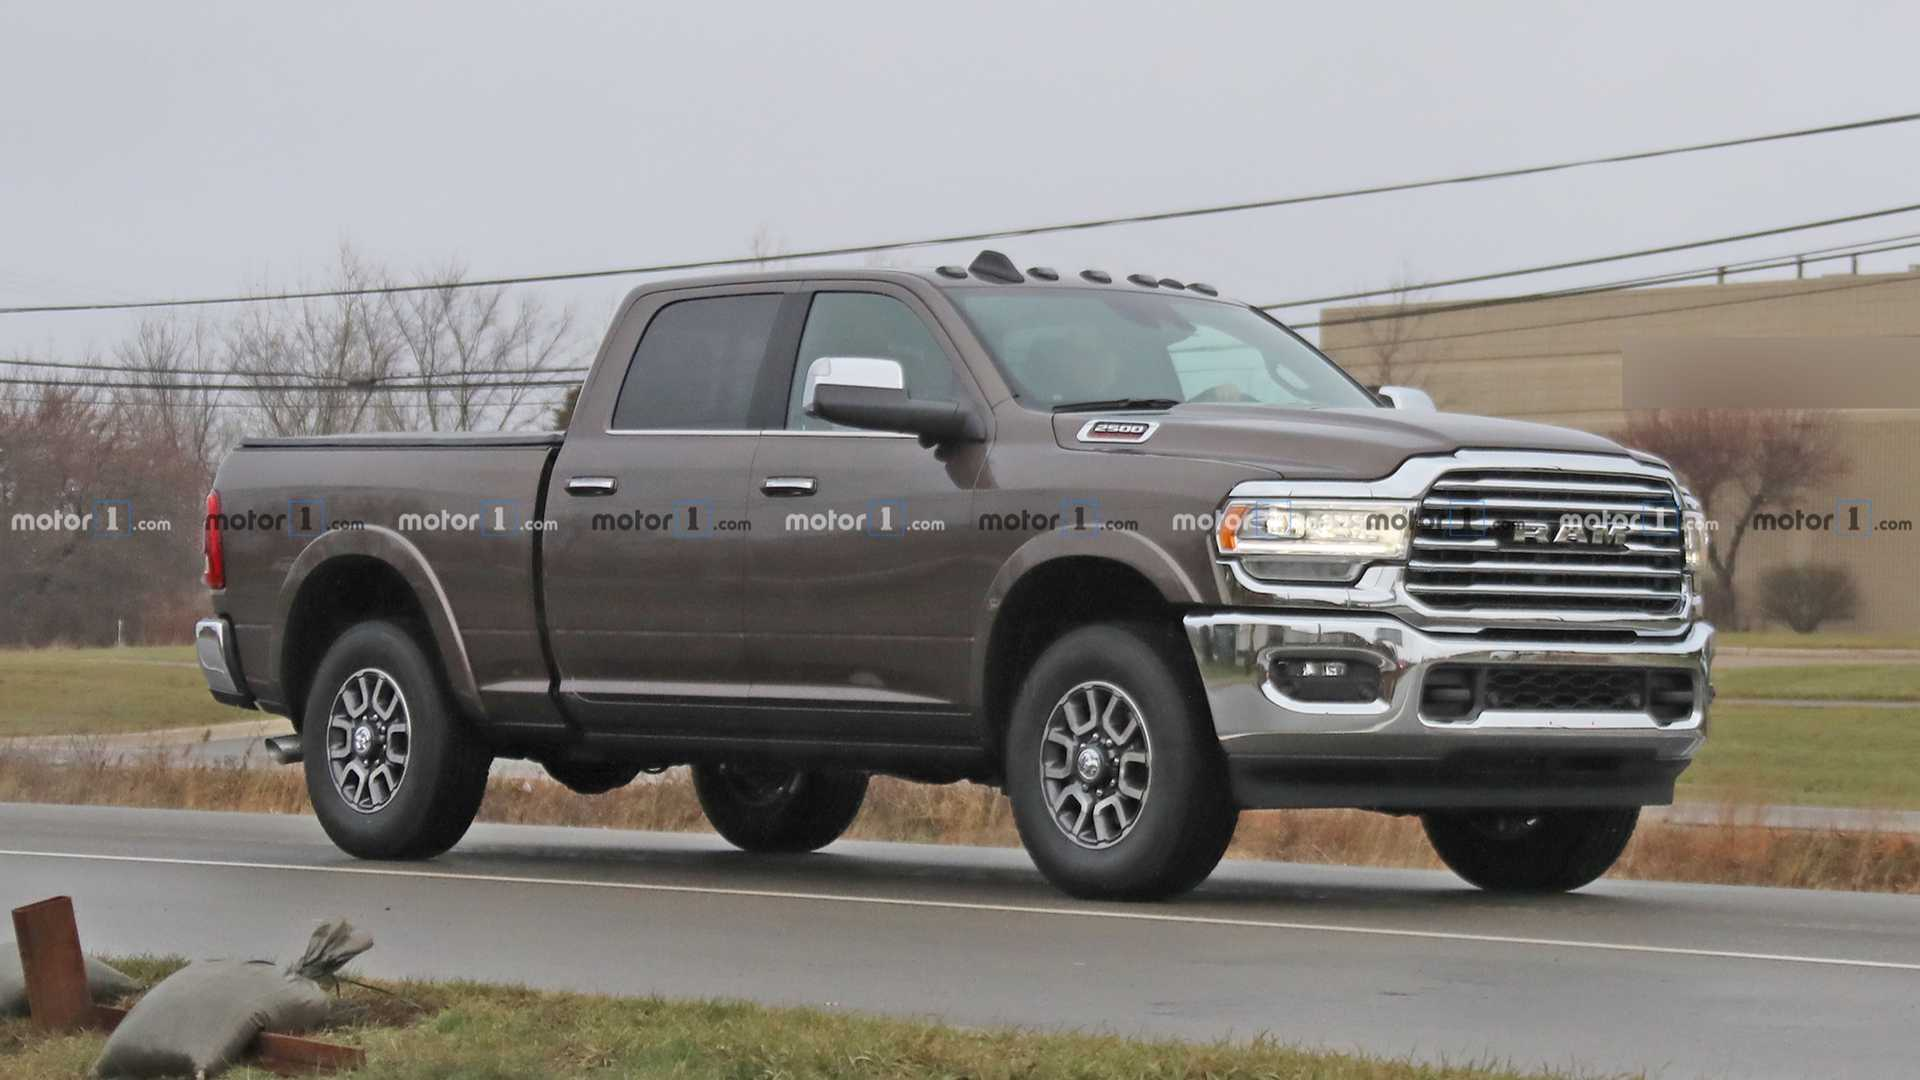 70 All New 2020 Ram 3500 Diesel Interior